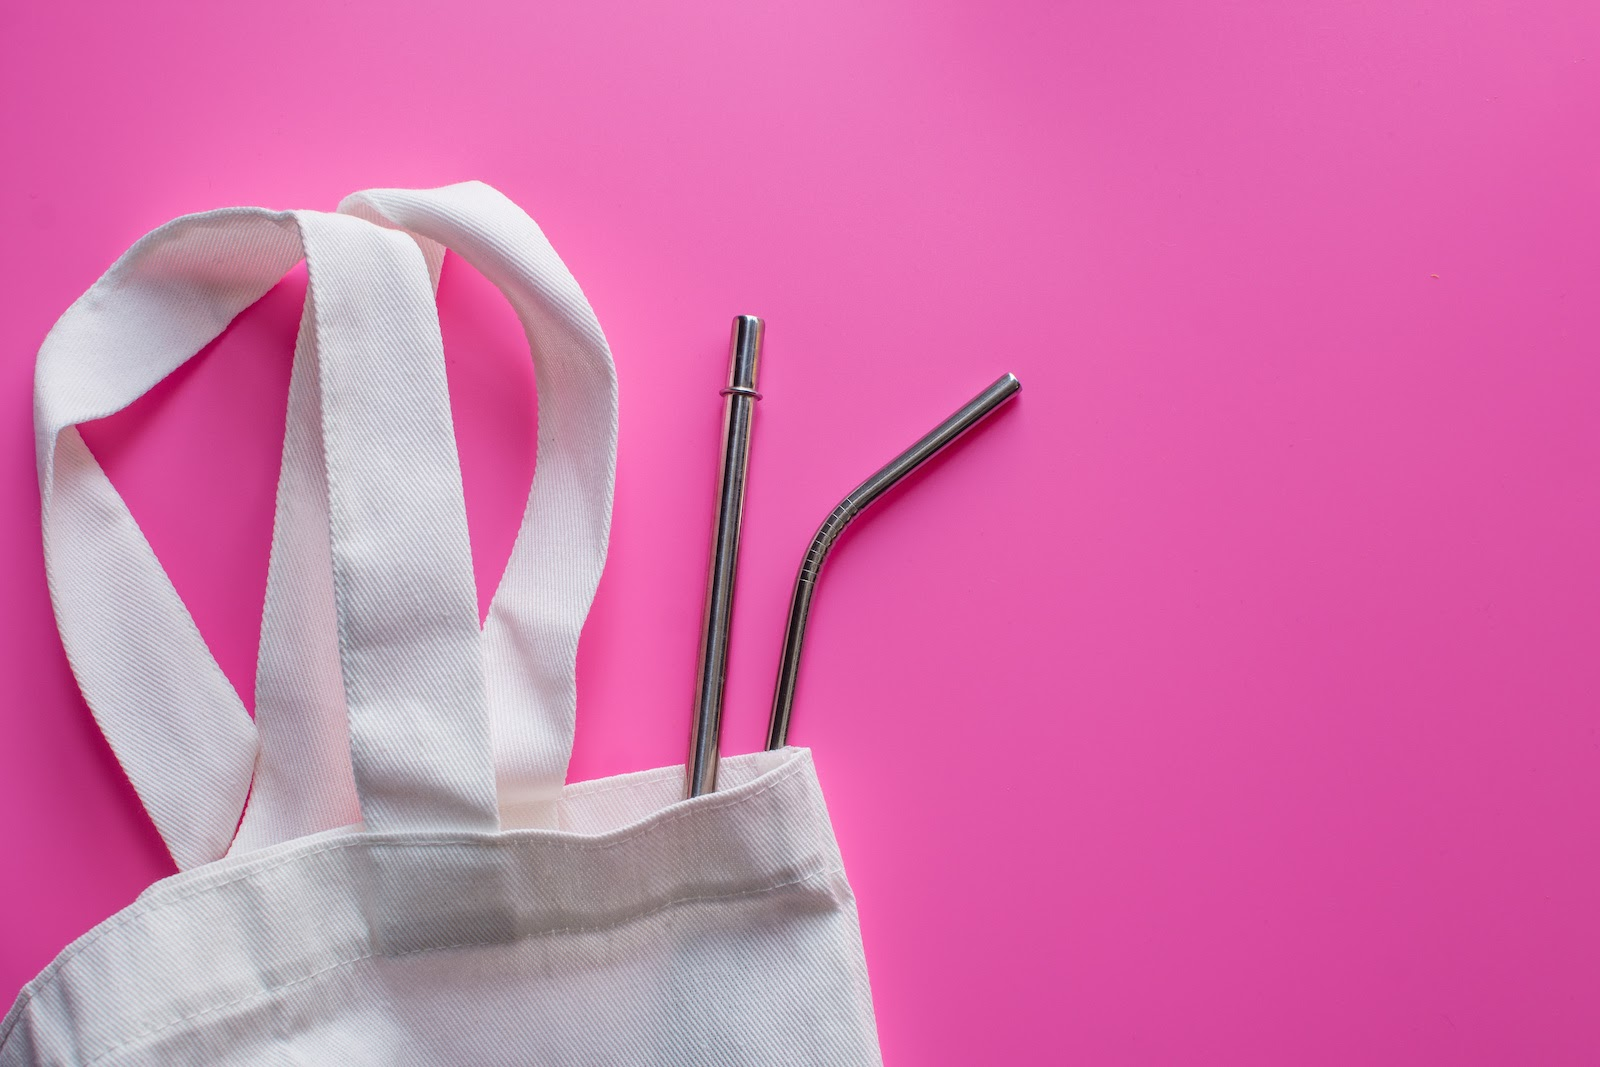 Sustainability focused gifts of reusable bags and straws